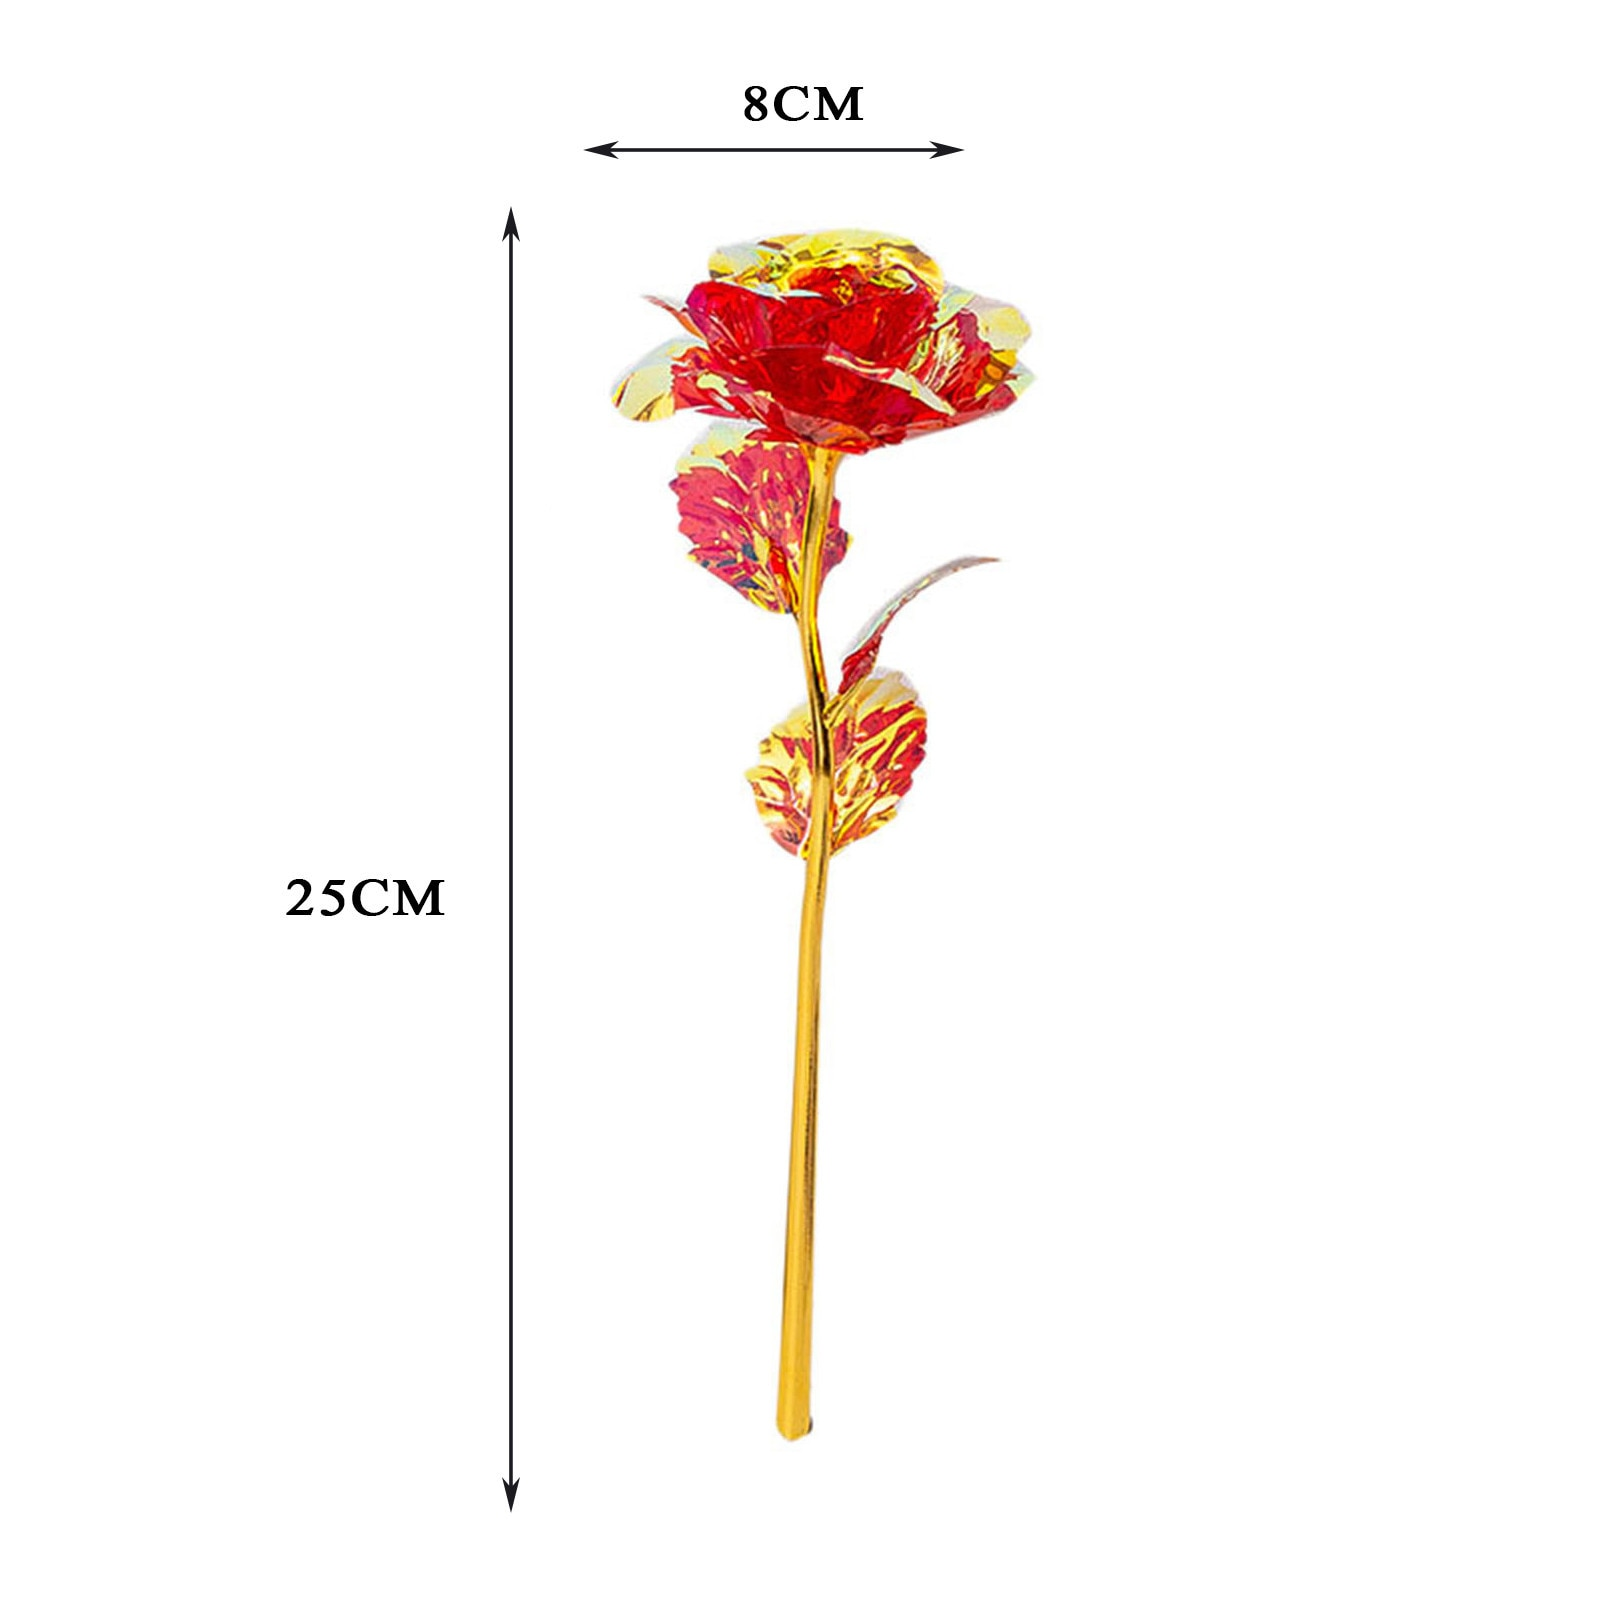 Colored Floral Vase Decor DIY Christmas Decoration Plastic Eternal Rose For Wedding Party Decorations 2021 XMAS Gift